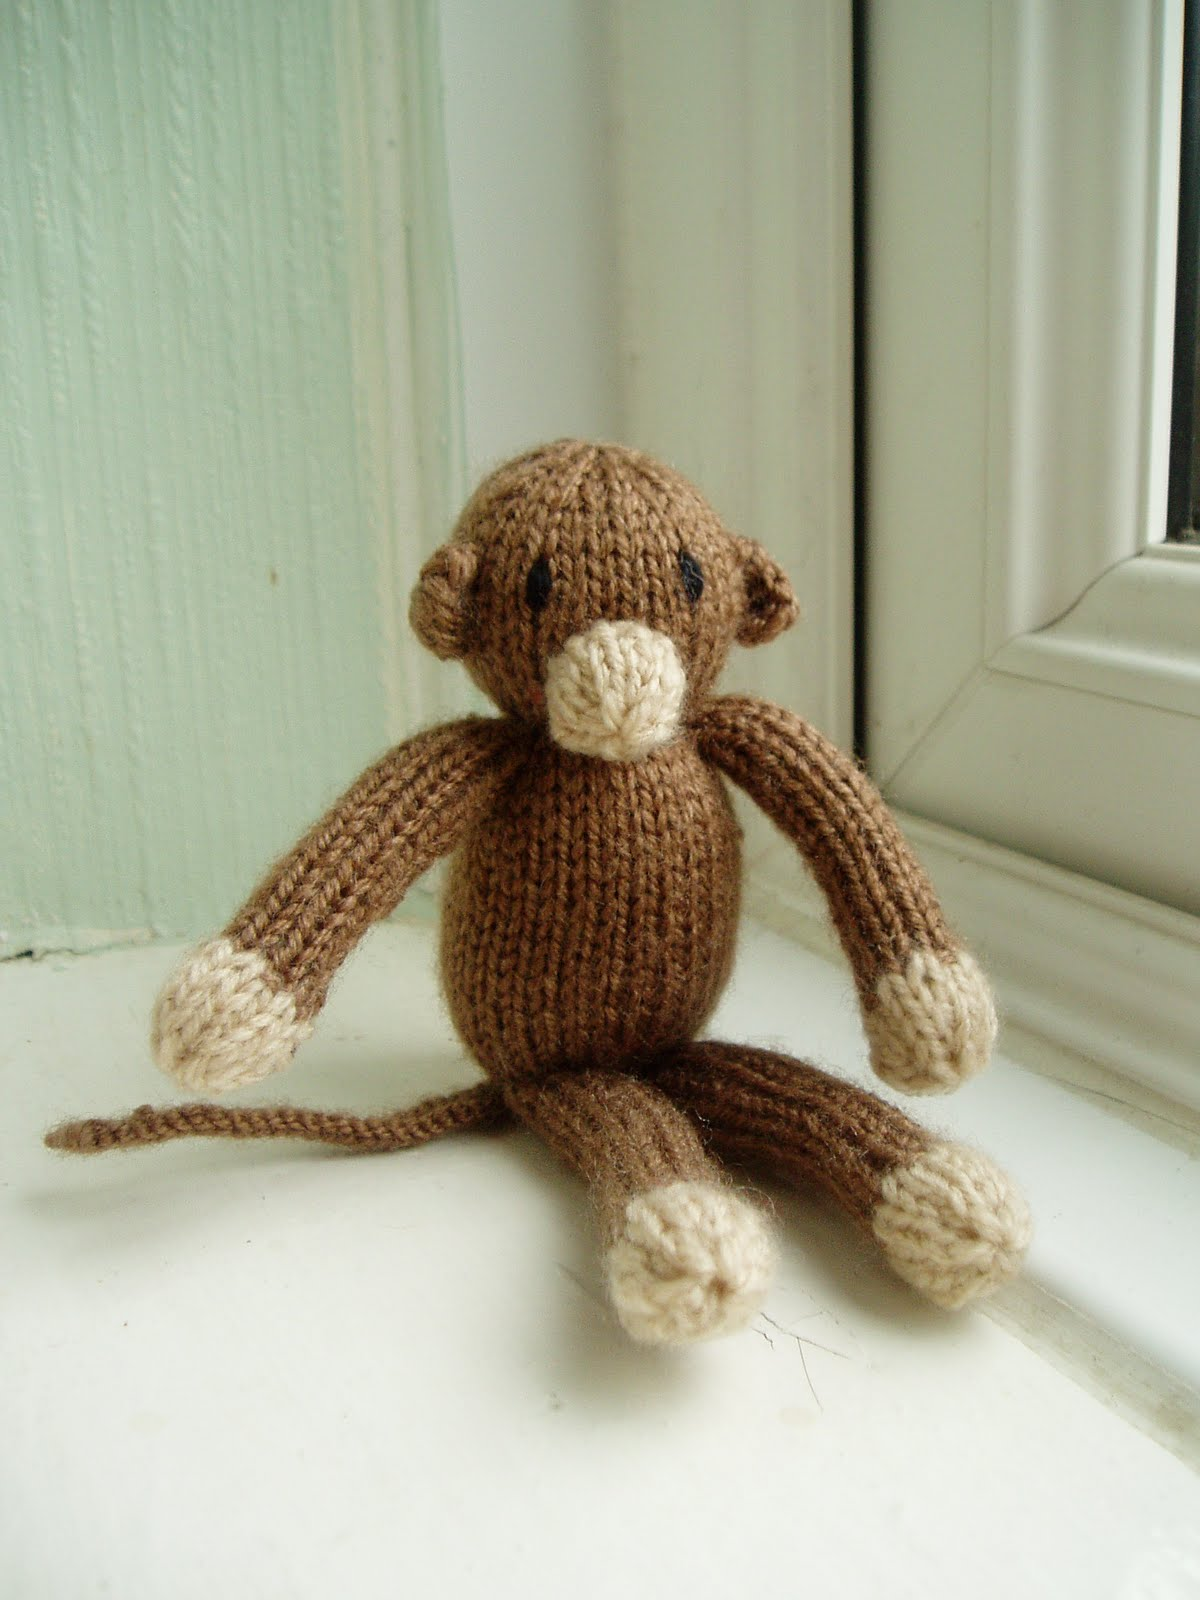 Knitting Patterns For Miniature Animals : Miss Aine: Free Pattern - Mini Monkey